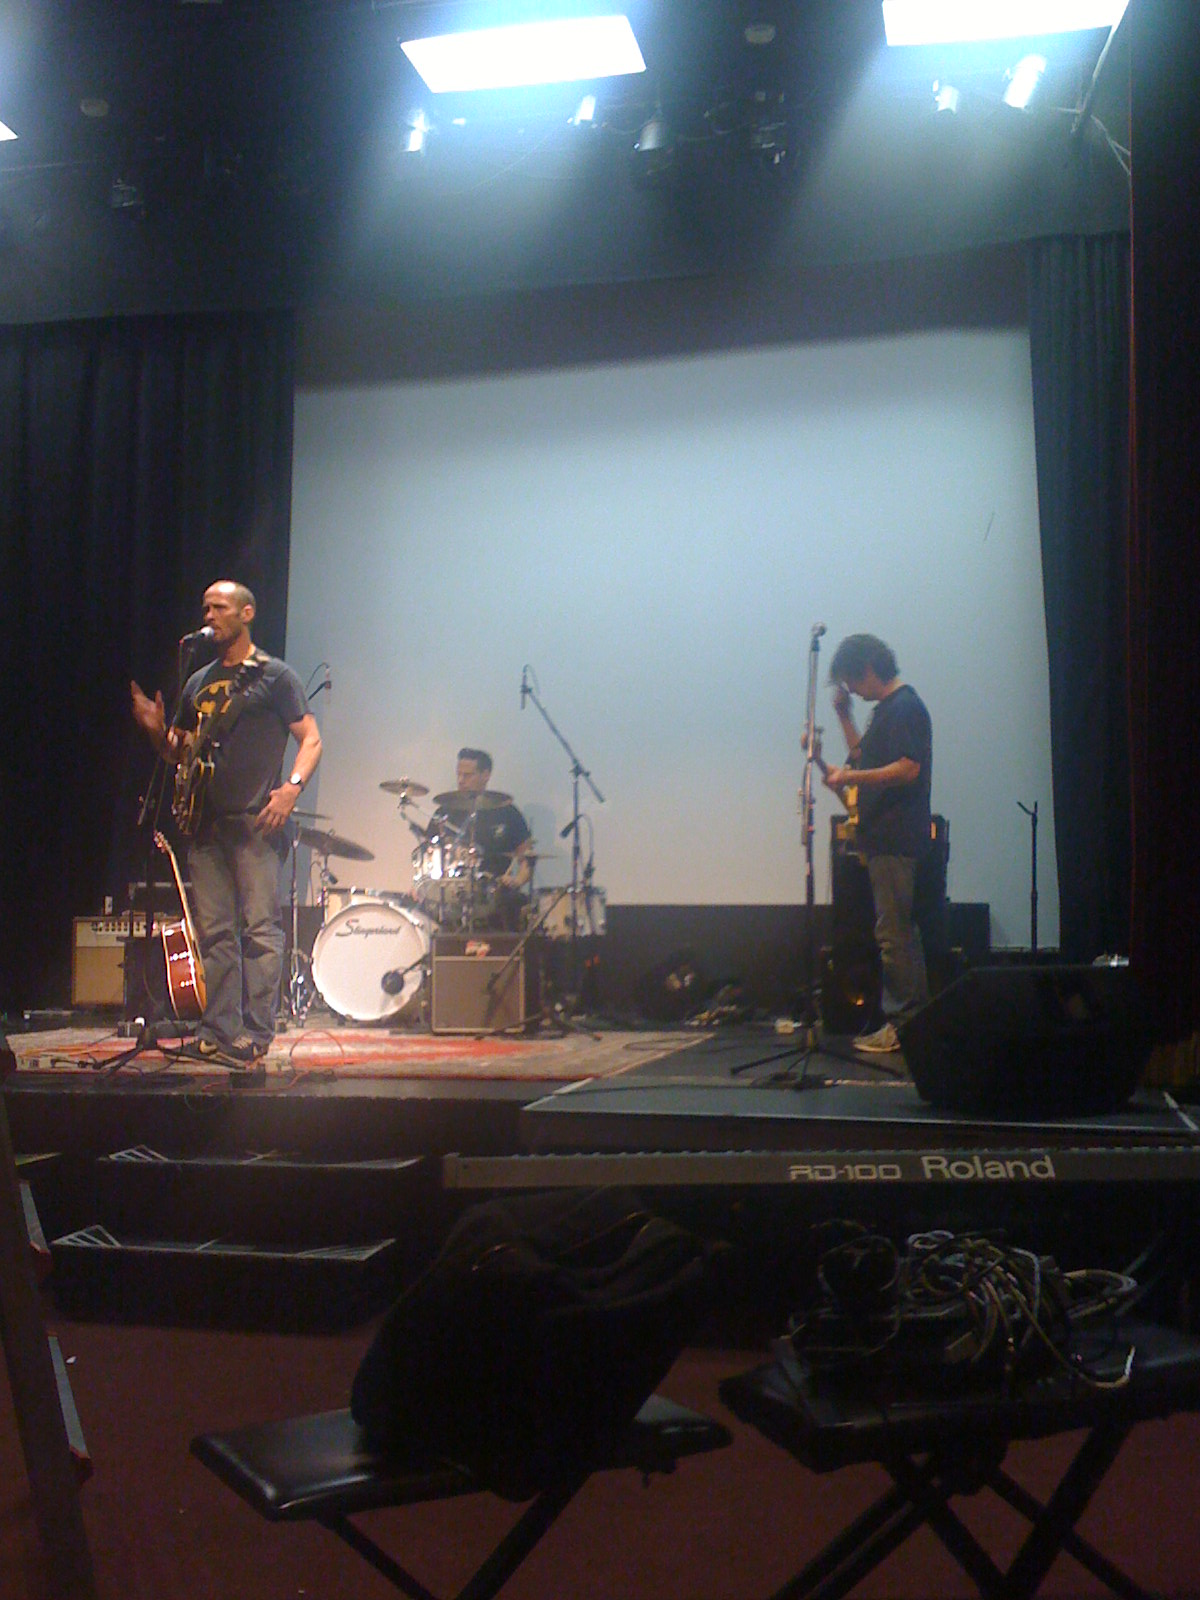 paul thorn & band loading in and setting up